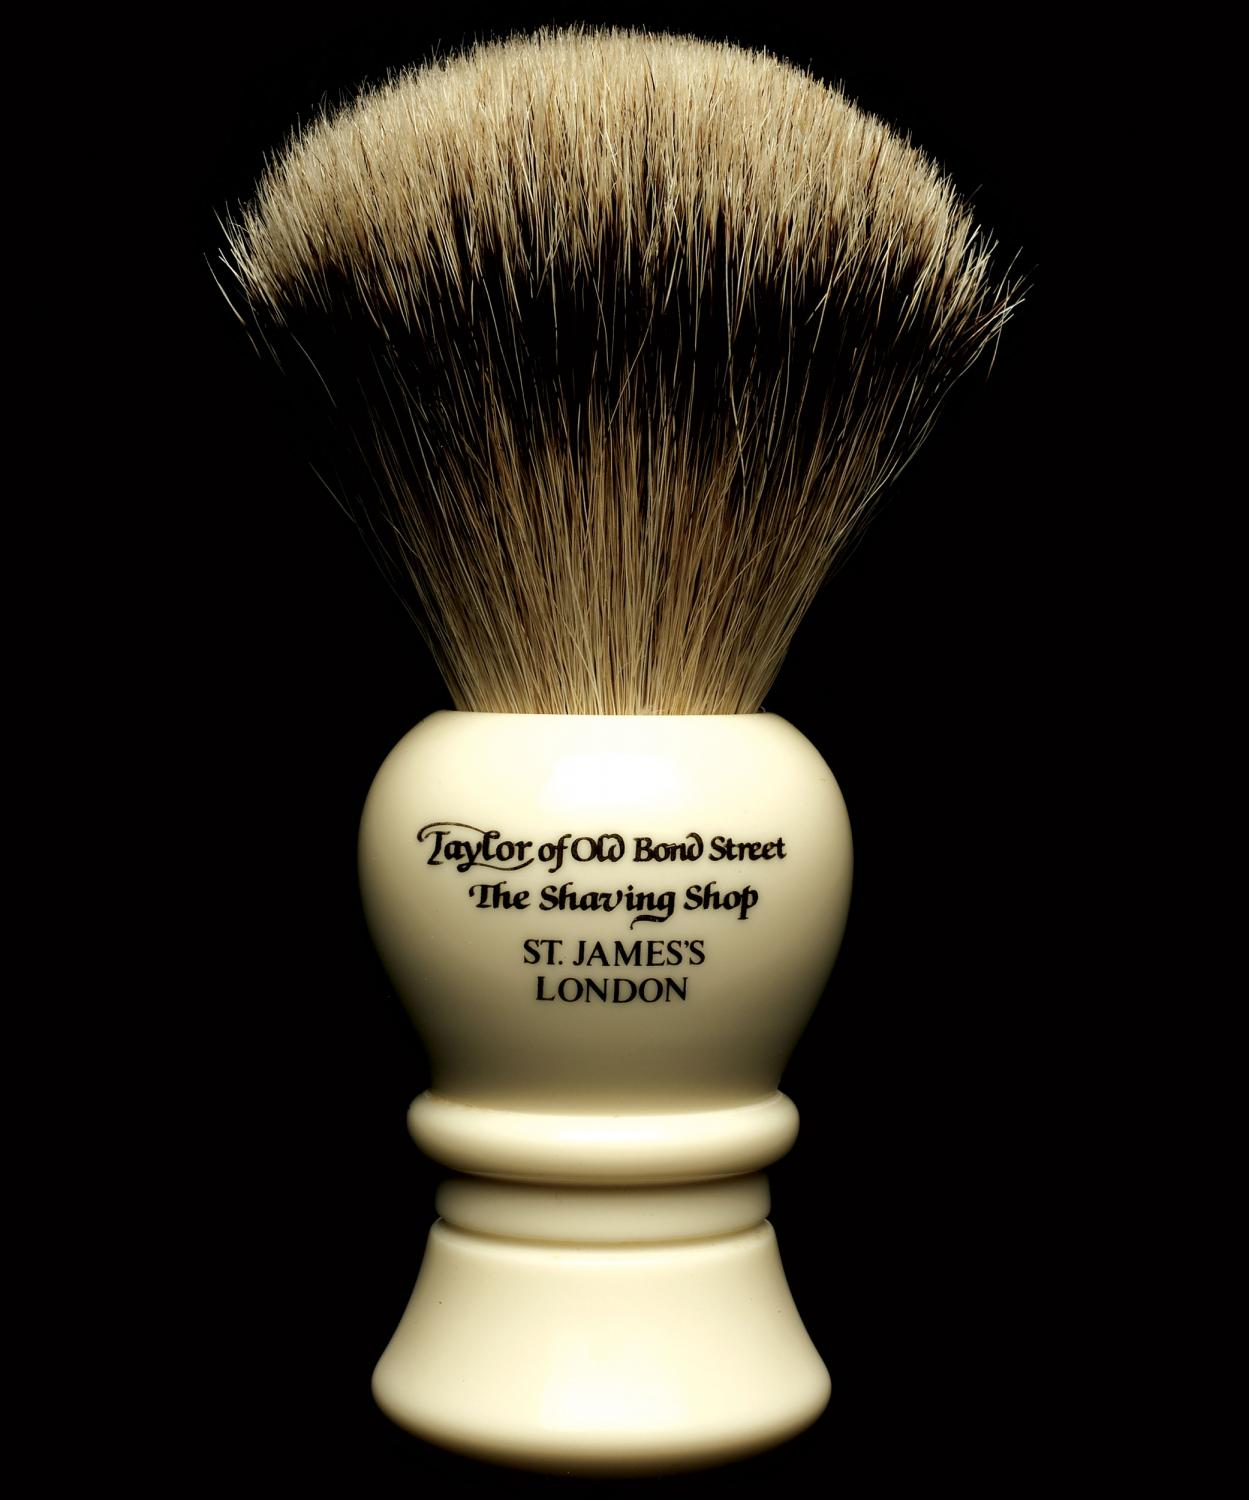 Taylor of Old Bond Street S2235 Super Silvertip Badger Shaving Brush, Medium, Bulbous Shaped Handle